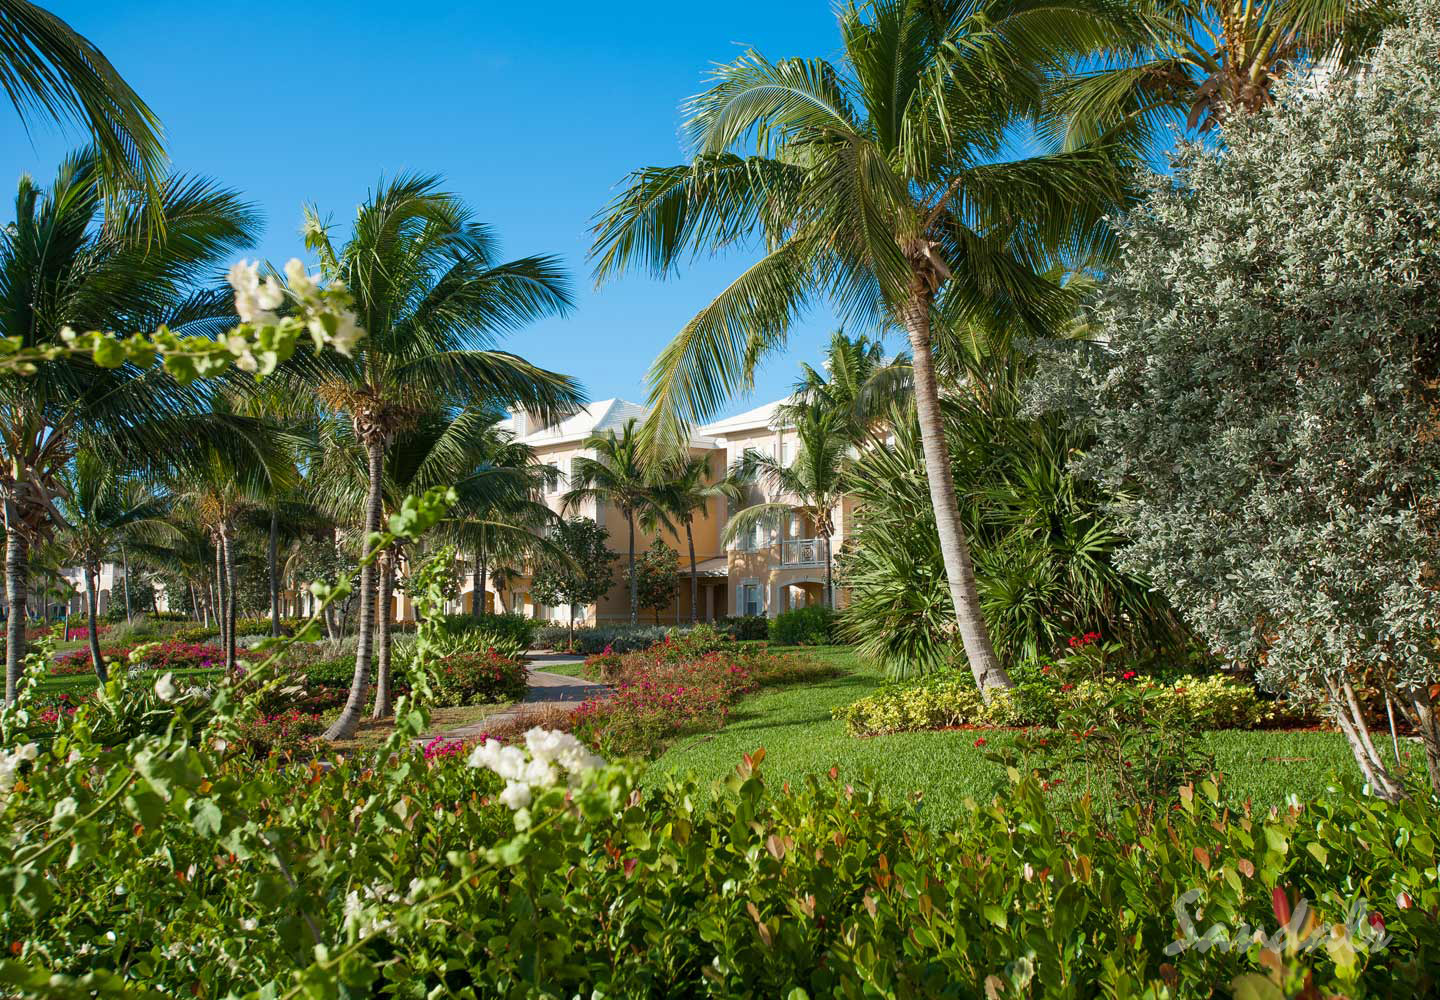 Travel Agency All-Inclusive Resort Sandals Emerald Bay 074